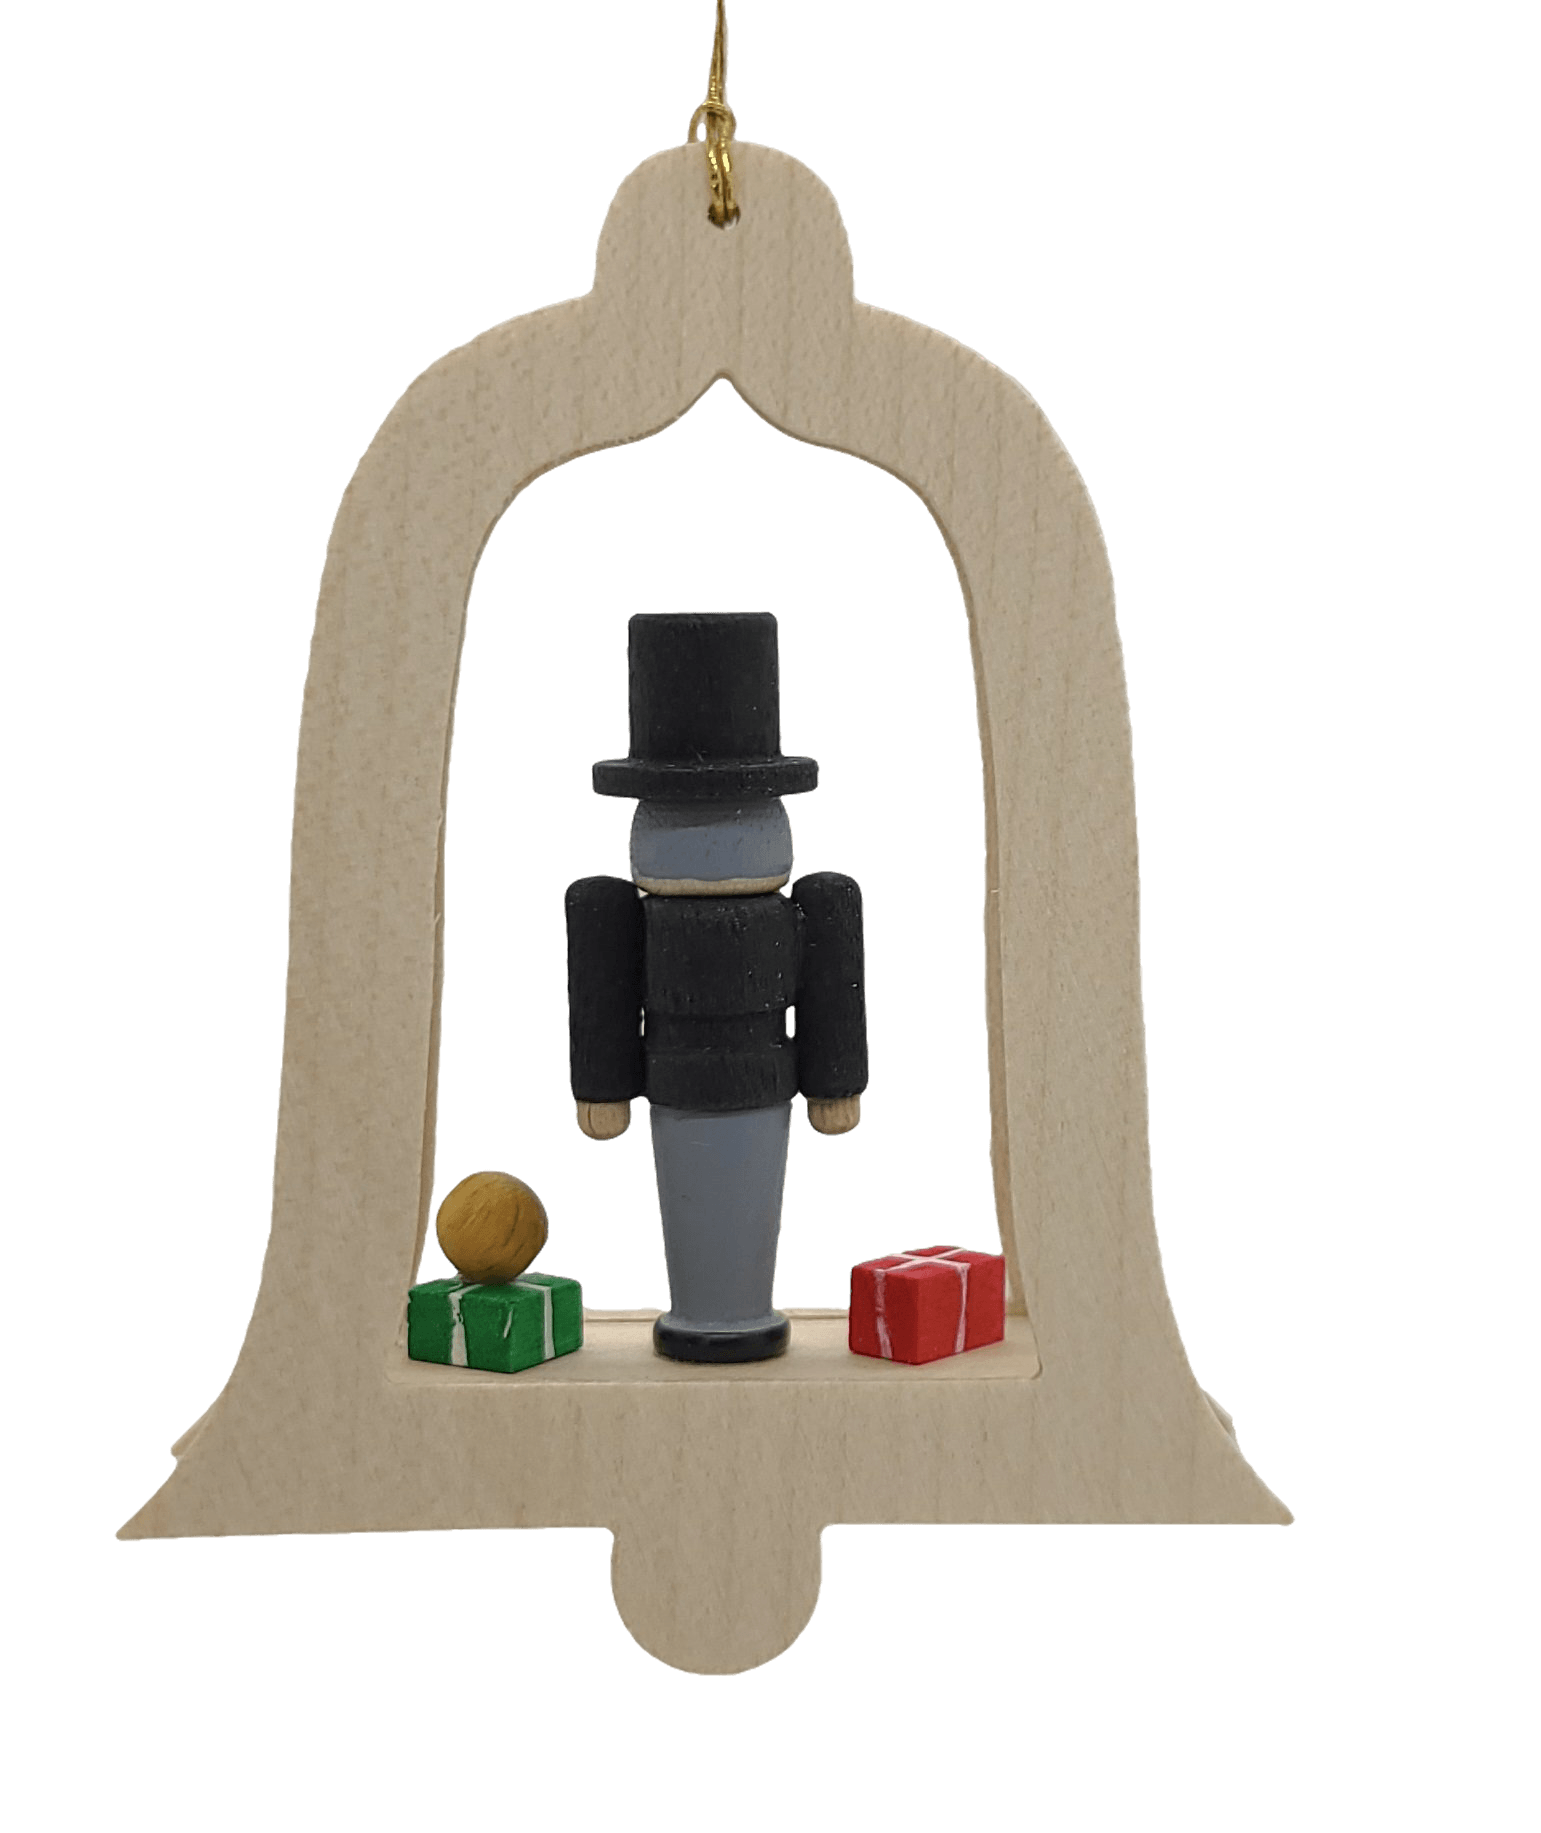 Handmade hanging wood Bell Nutcracker Drosselmeyer Ornament - Schmidt Christmas Market Christmas Decoration